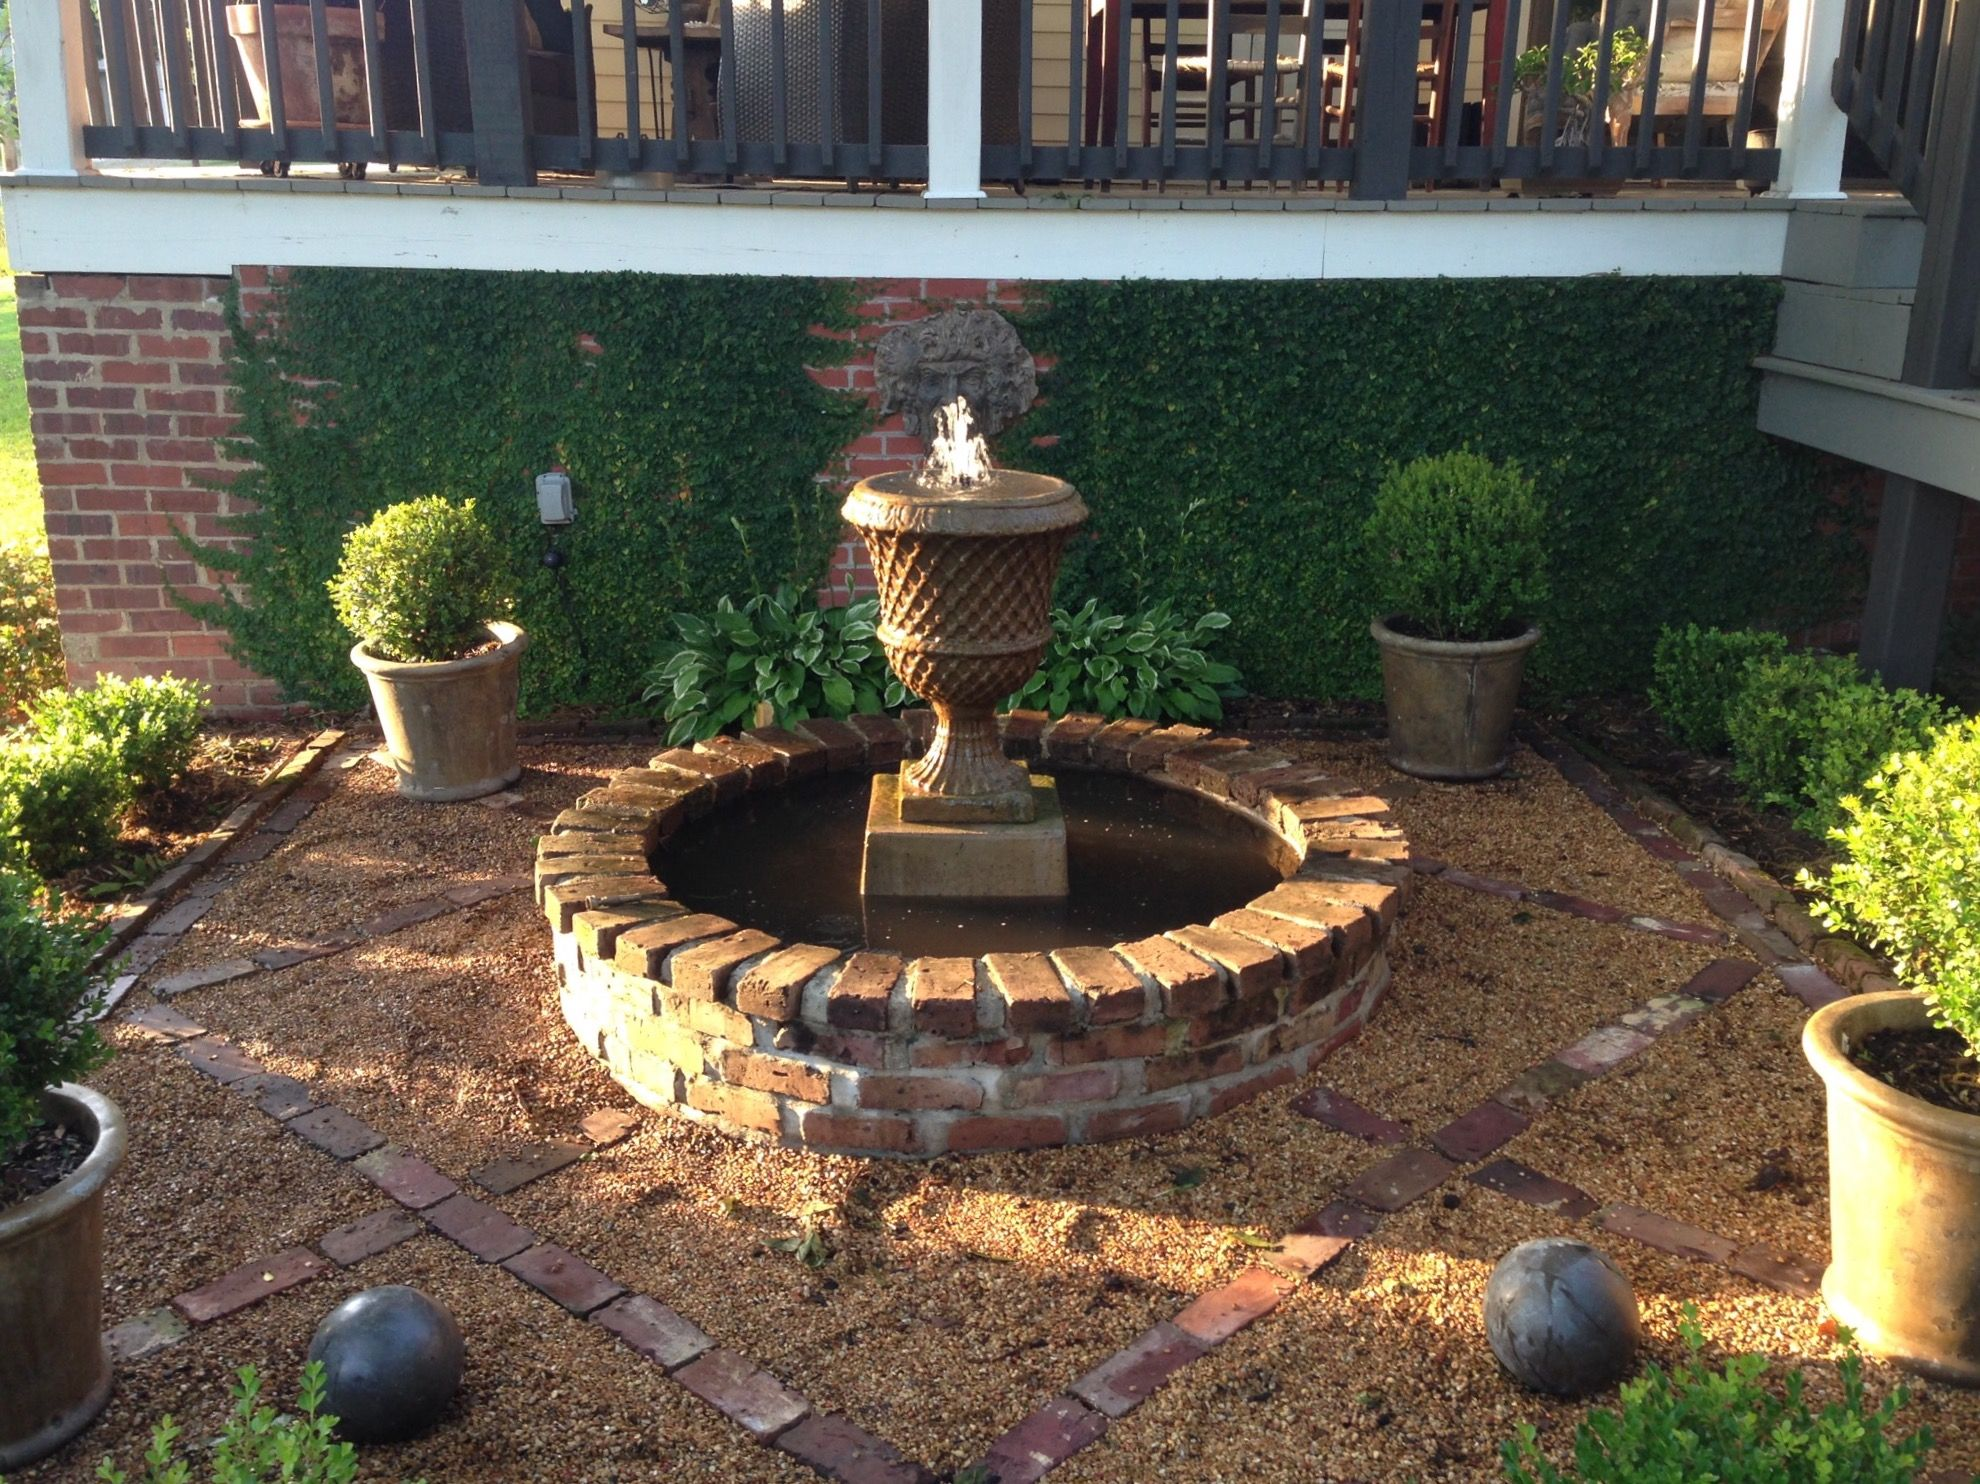 Brick Grid With Pea Gravel Around Garden Fountain Home Landscaping Garden Design Garden Inspiration